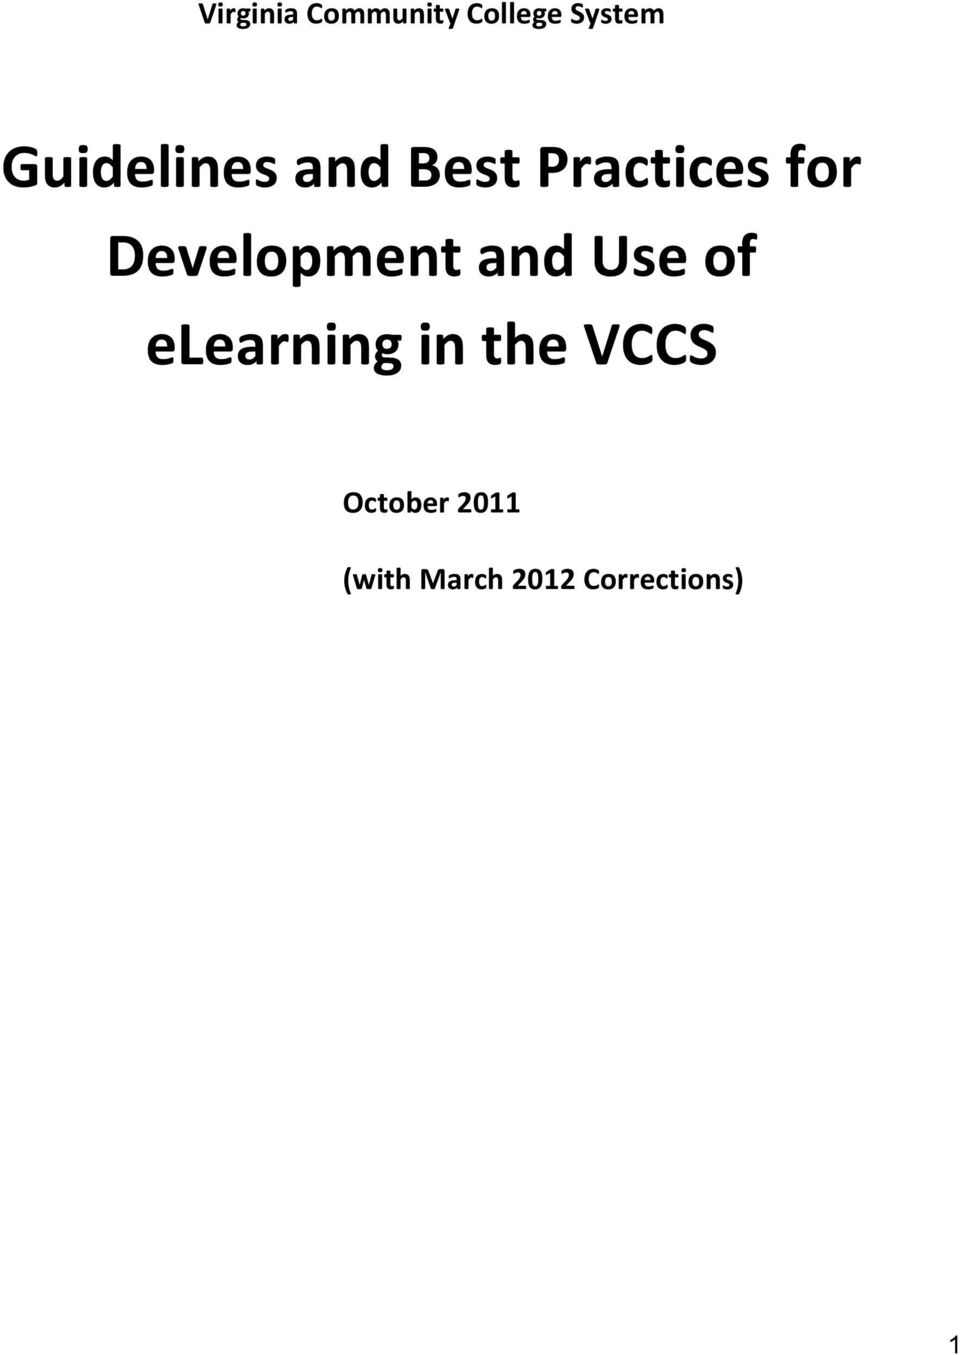 Development and Use of elearning in the